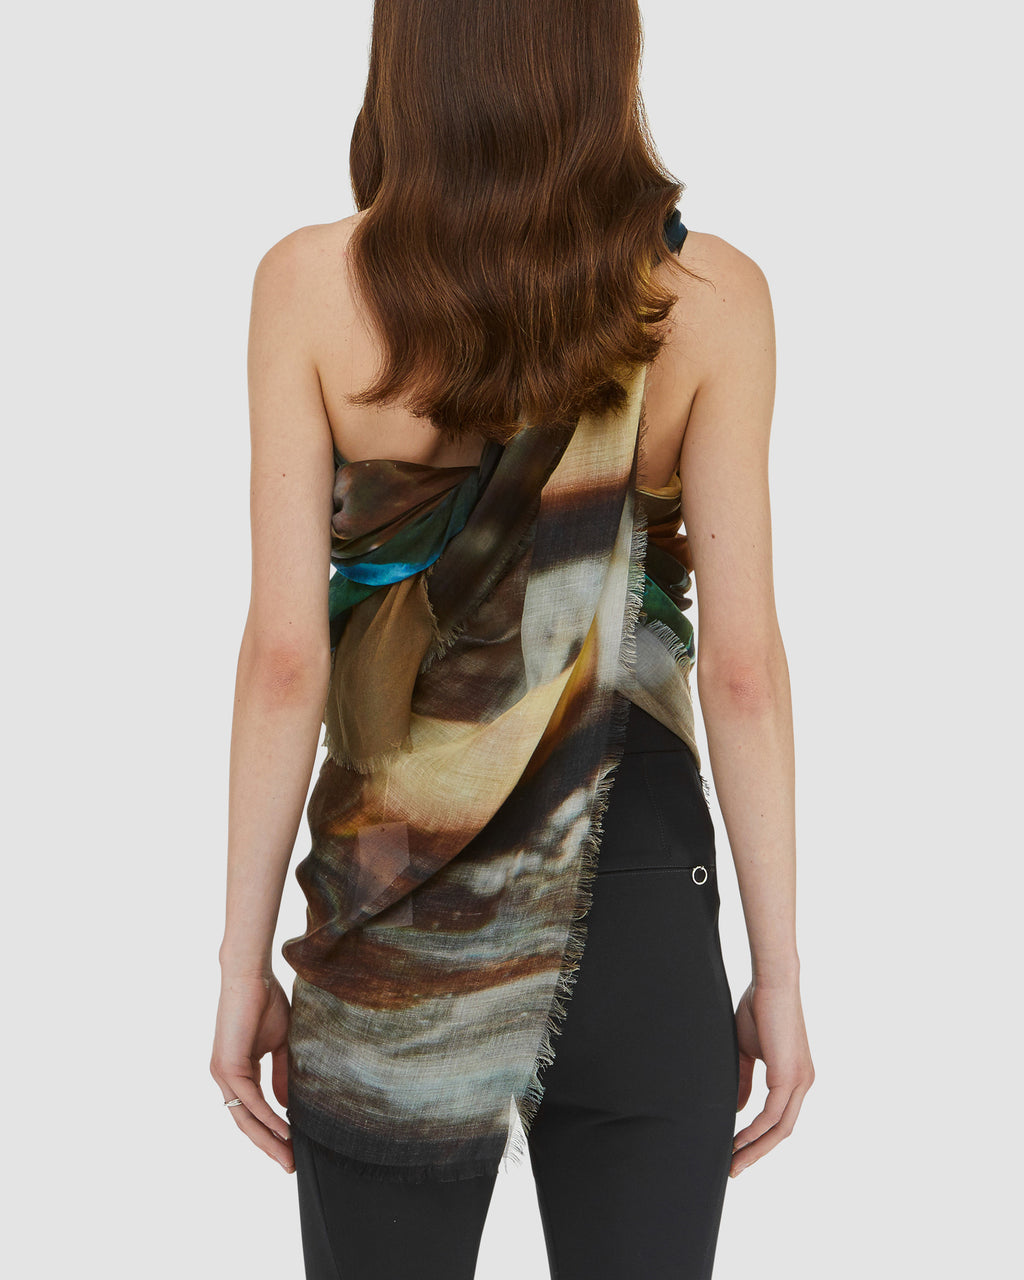 NICK KNIGHT SCARF